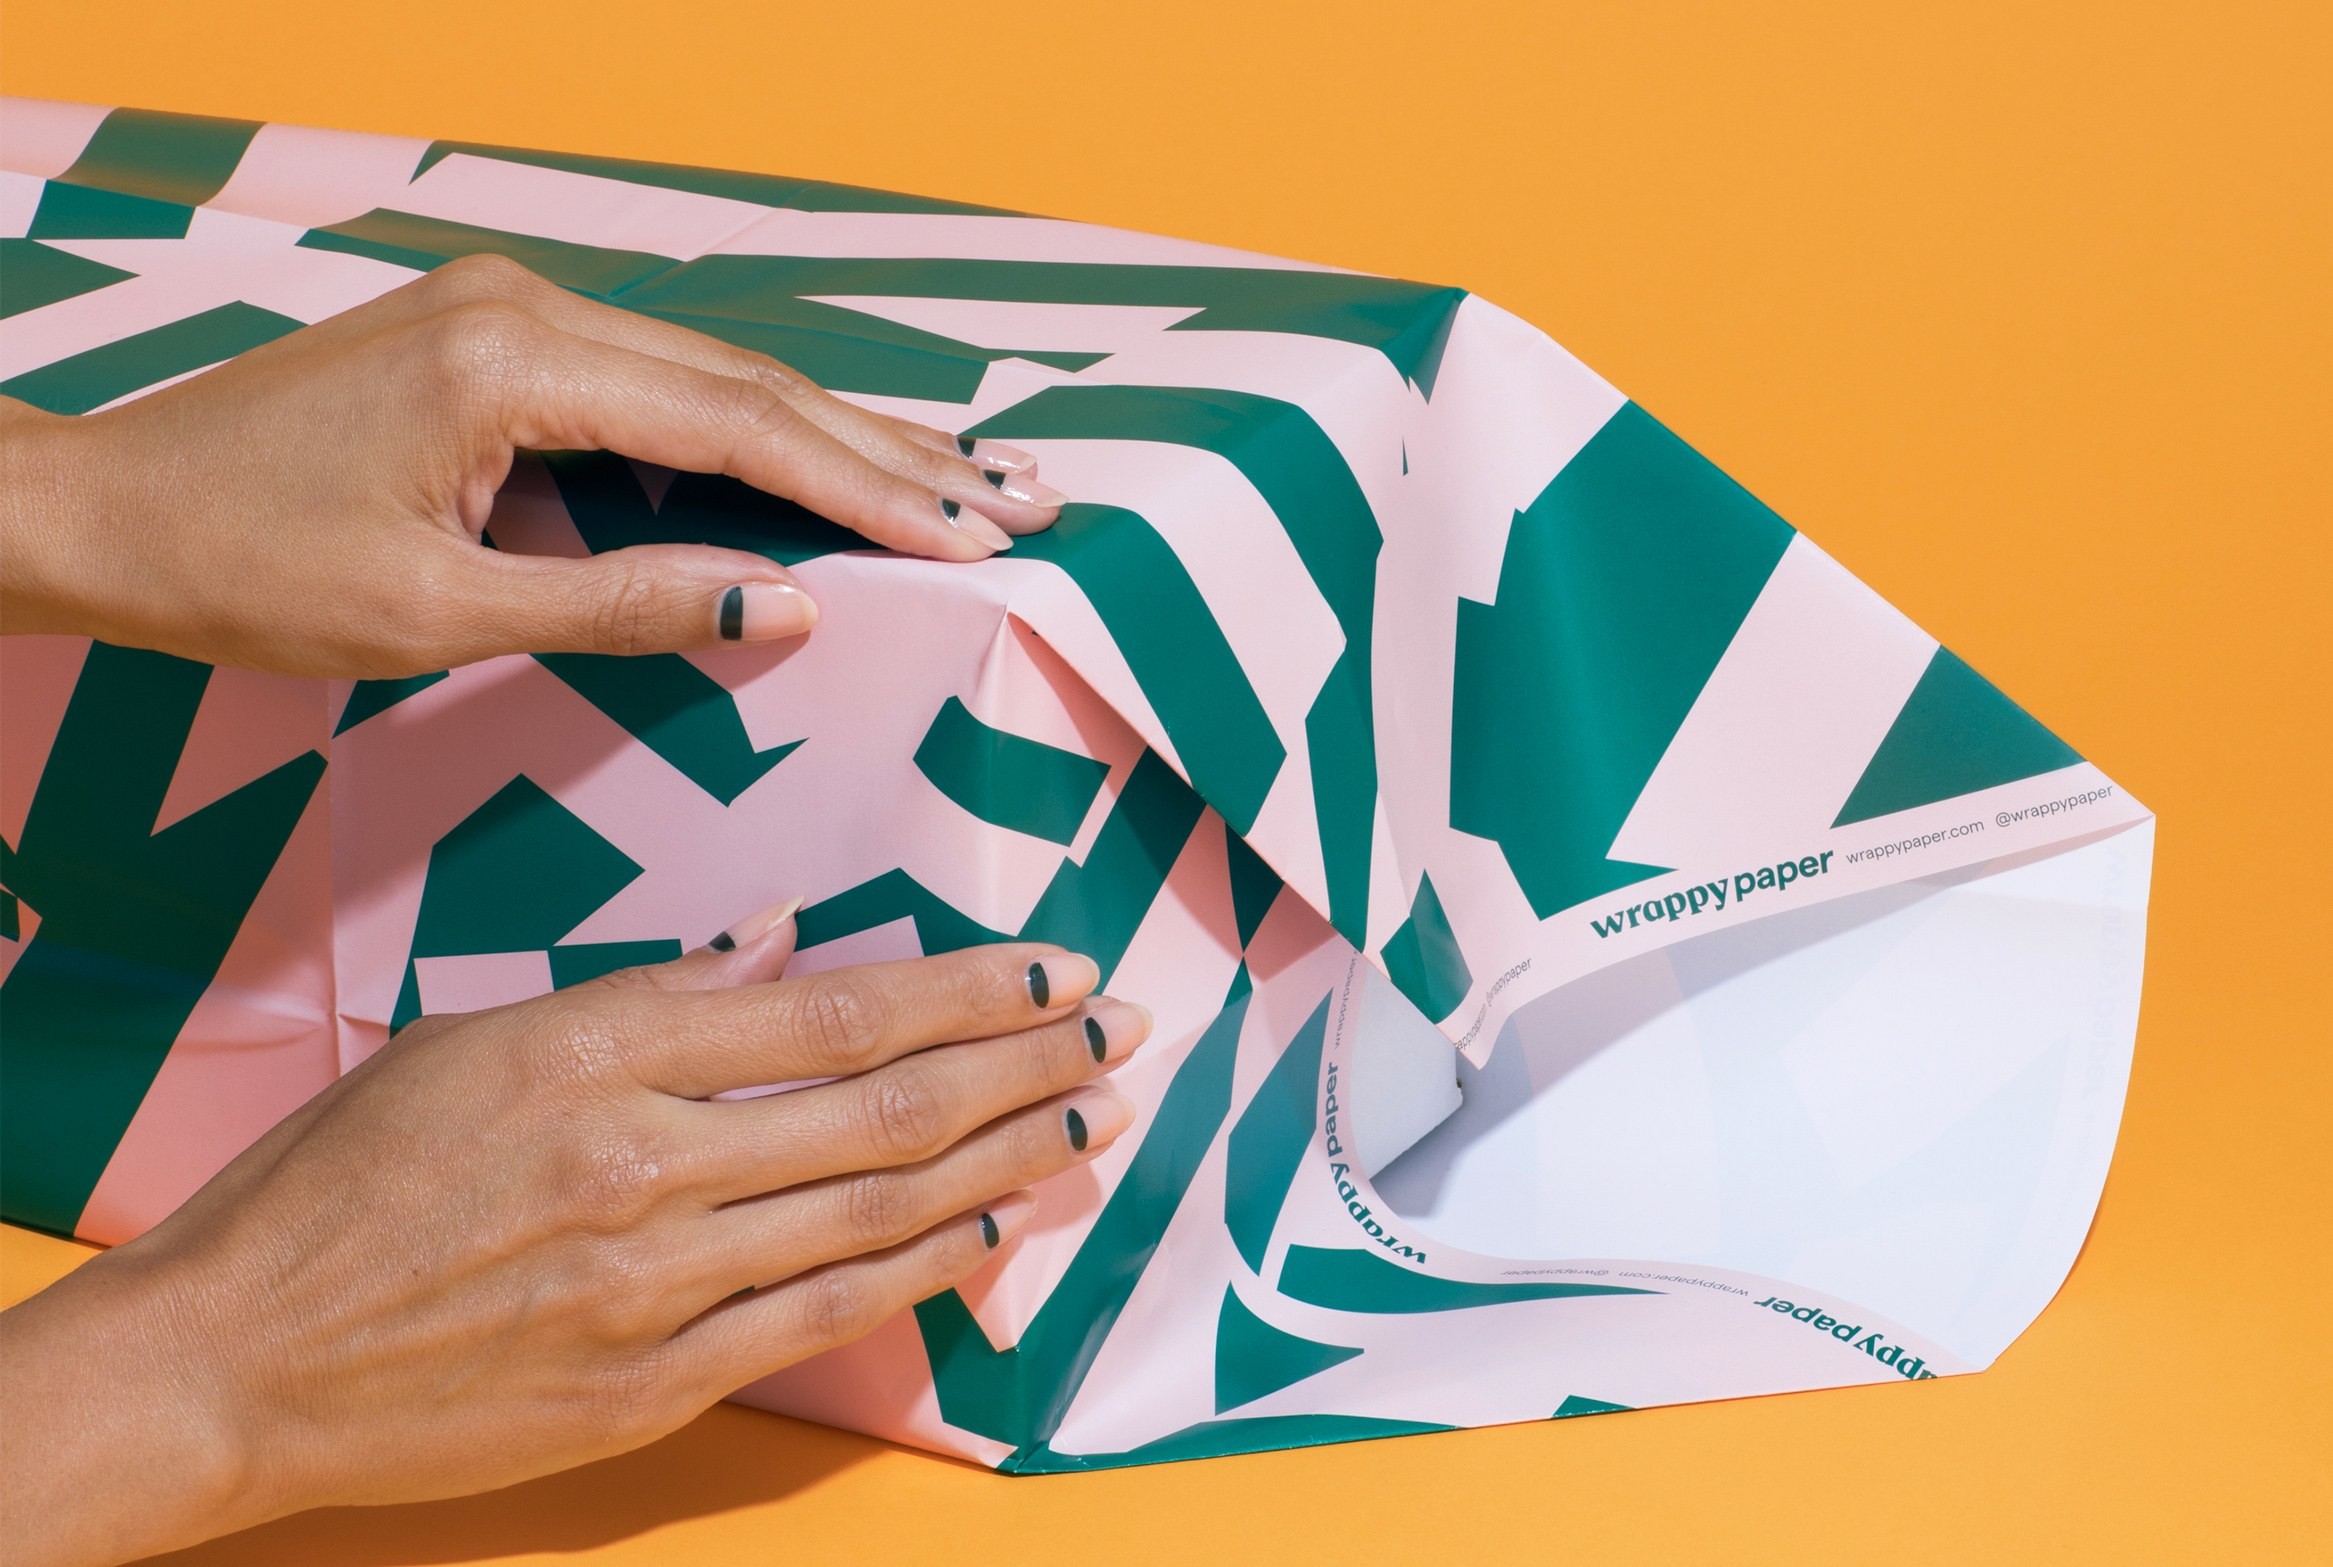 Meet Wrappy Paper, the Gift-Wrap Brand Changing Everything | Architectural Digest